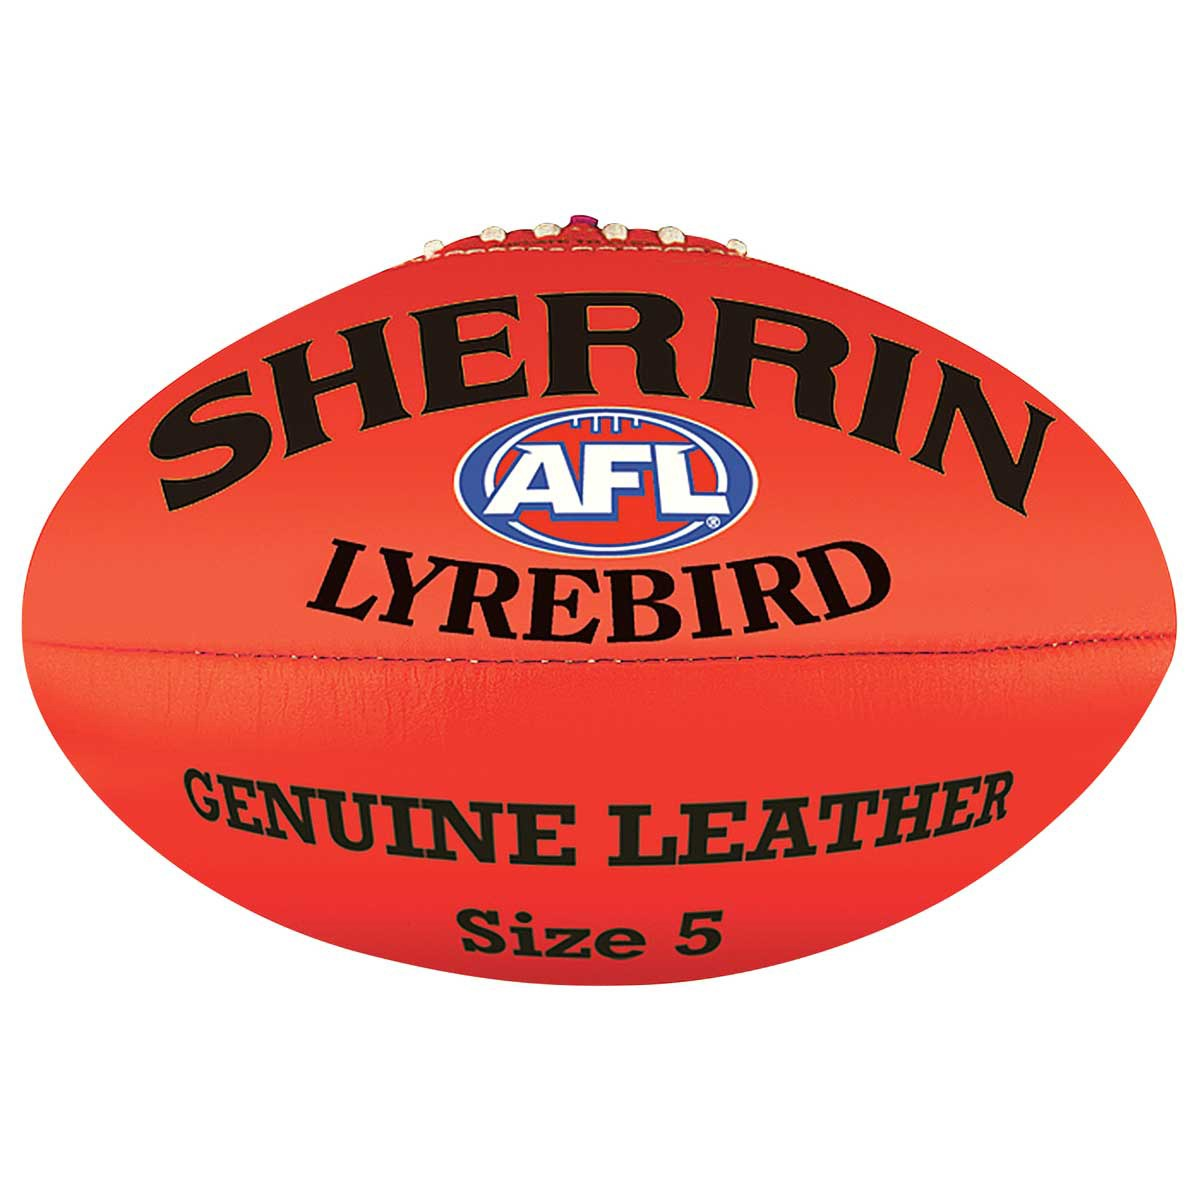 Ball clipart footy. Sherrin lyrebird red rebel